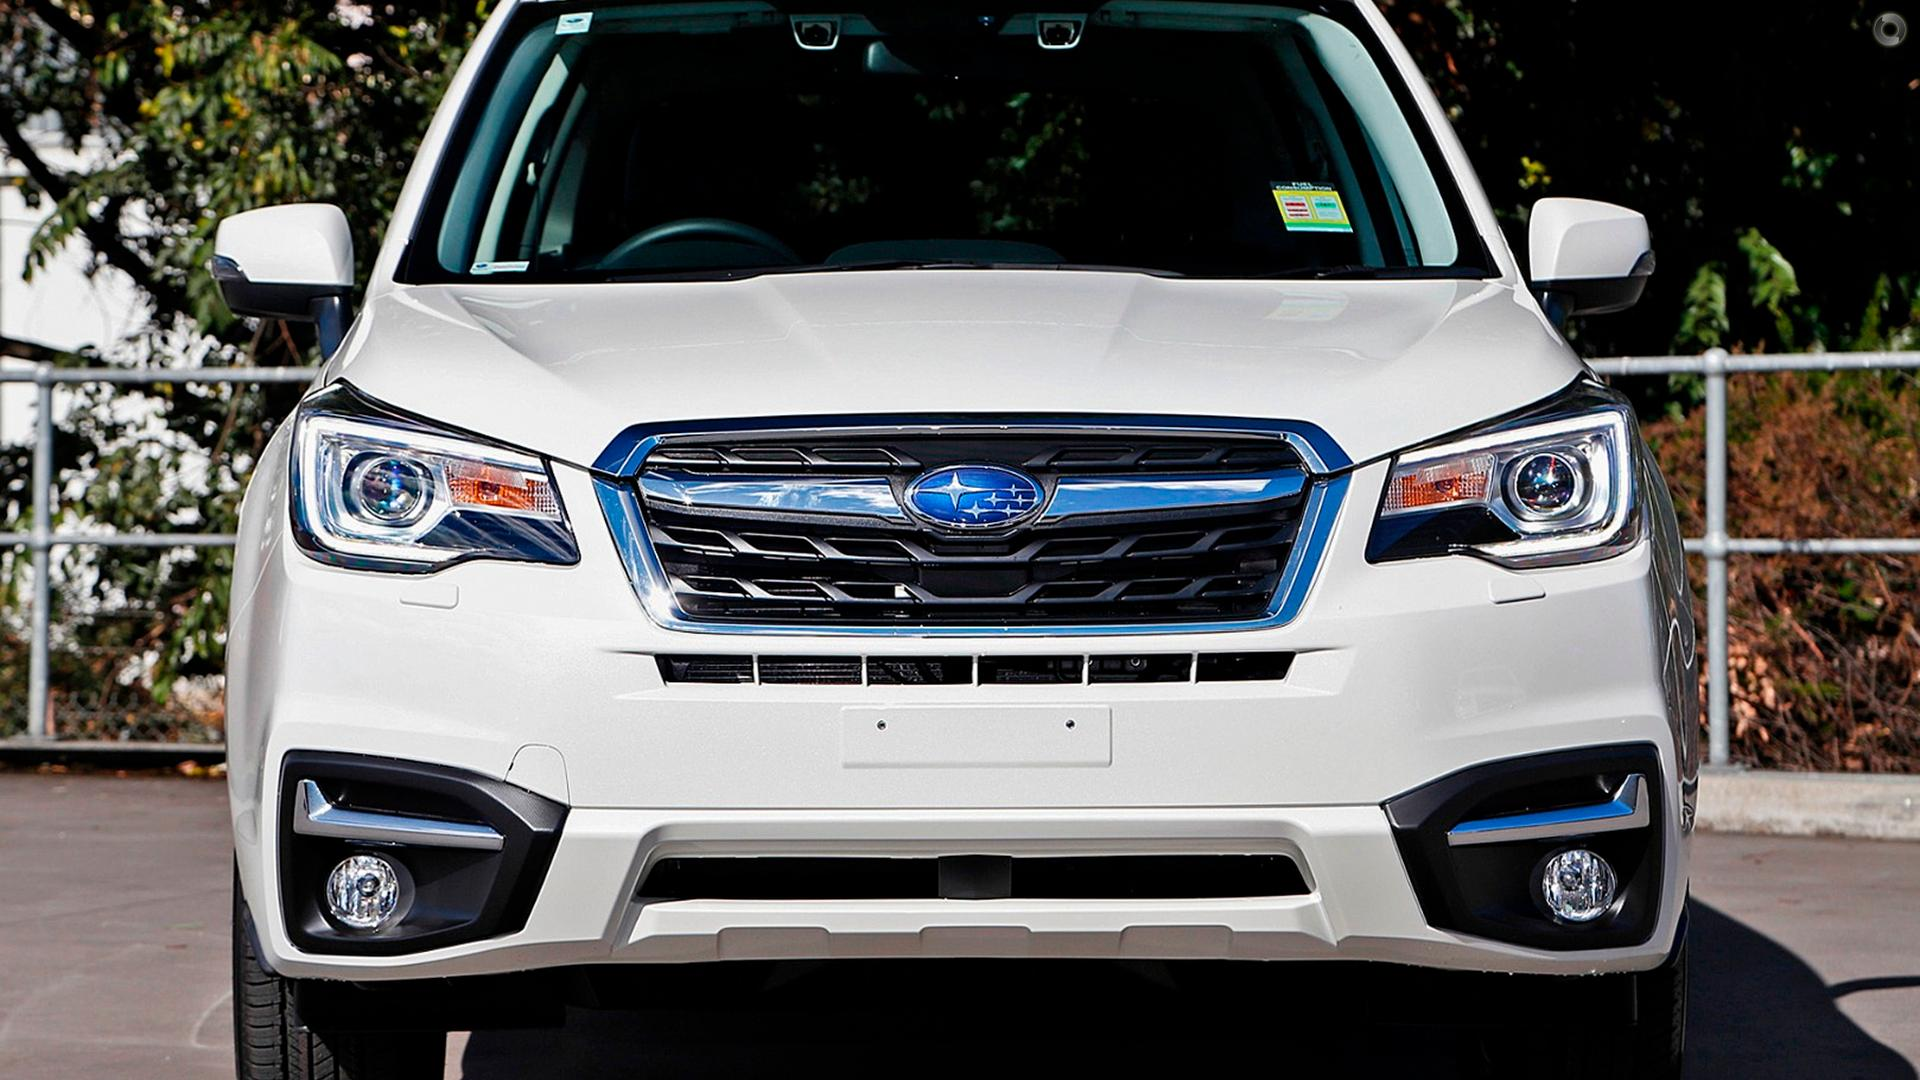 2017 Subaru Forester 2.5i-S S4